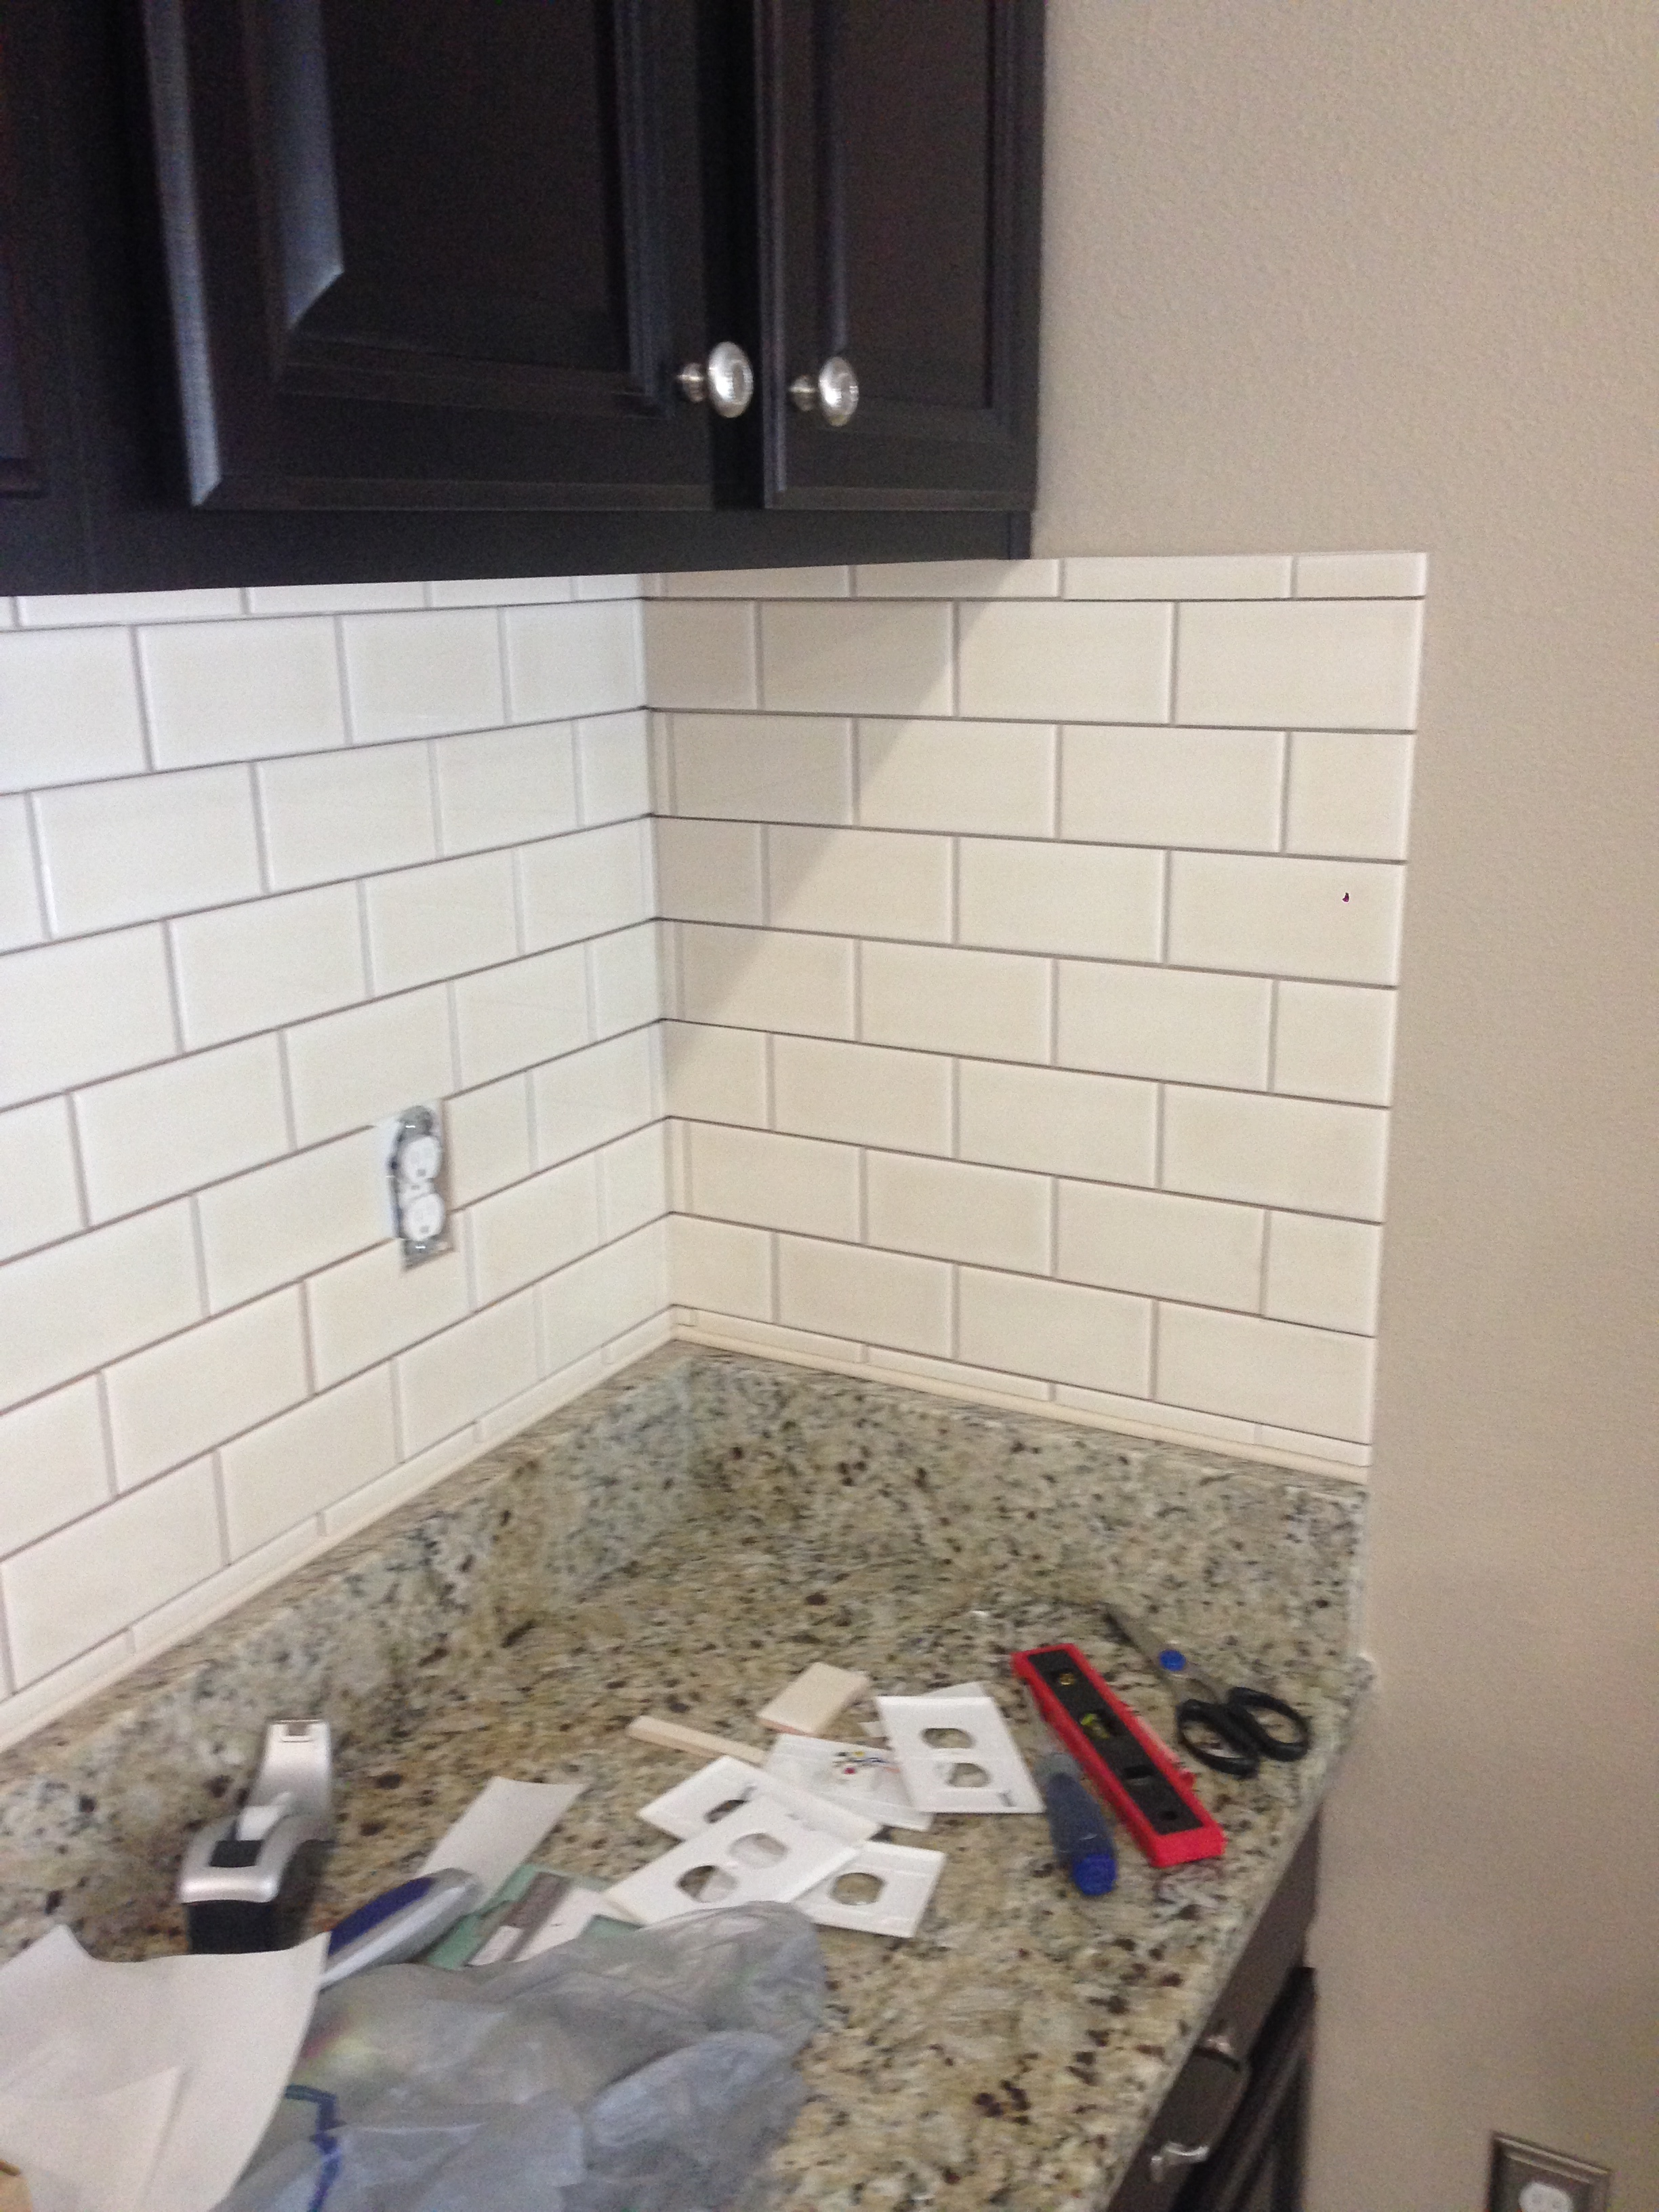 DIY Kitchen Backsplash - Frills & Drills